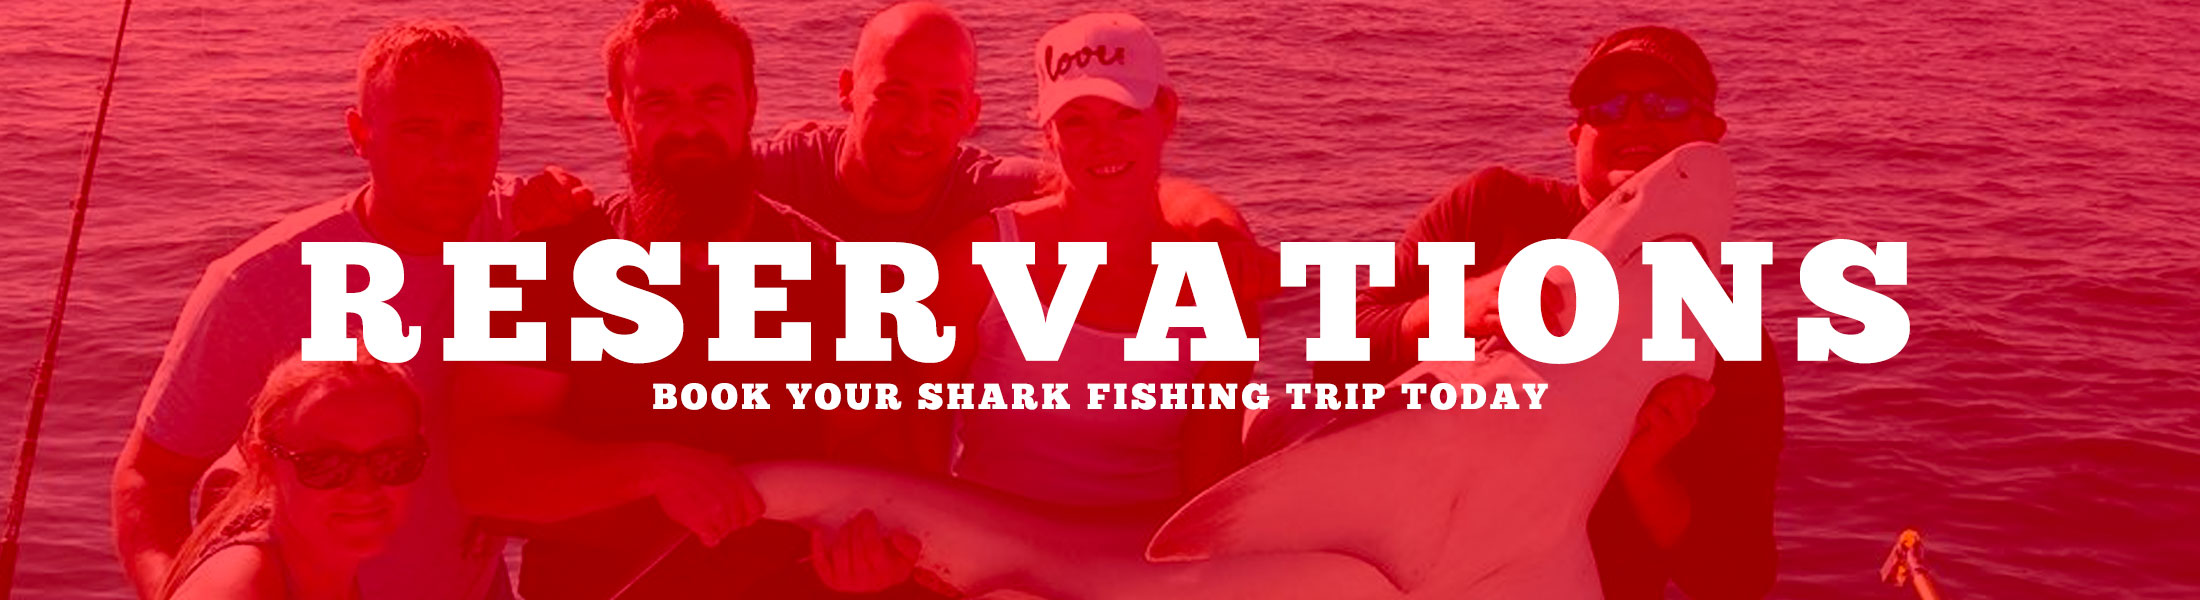 Make your reservation today for the shark fishing trip of a lifetime in Central Florida.